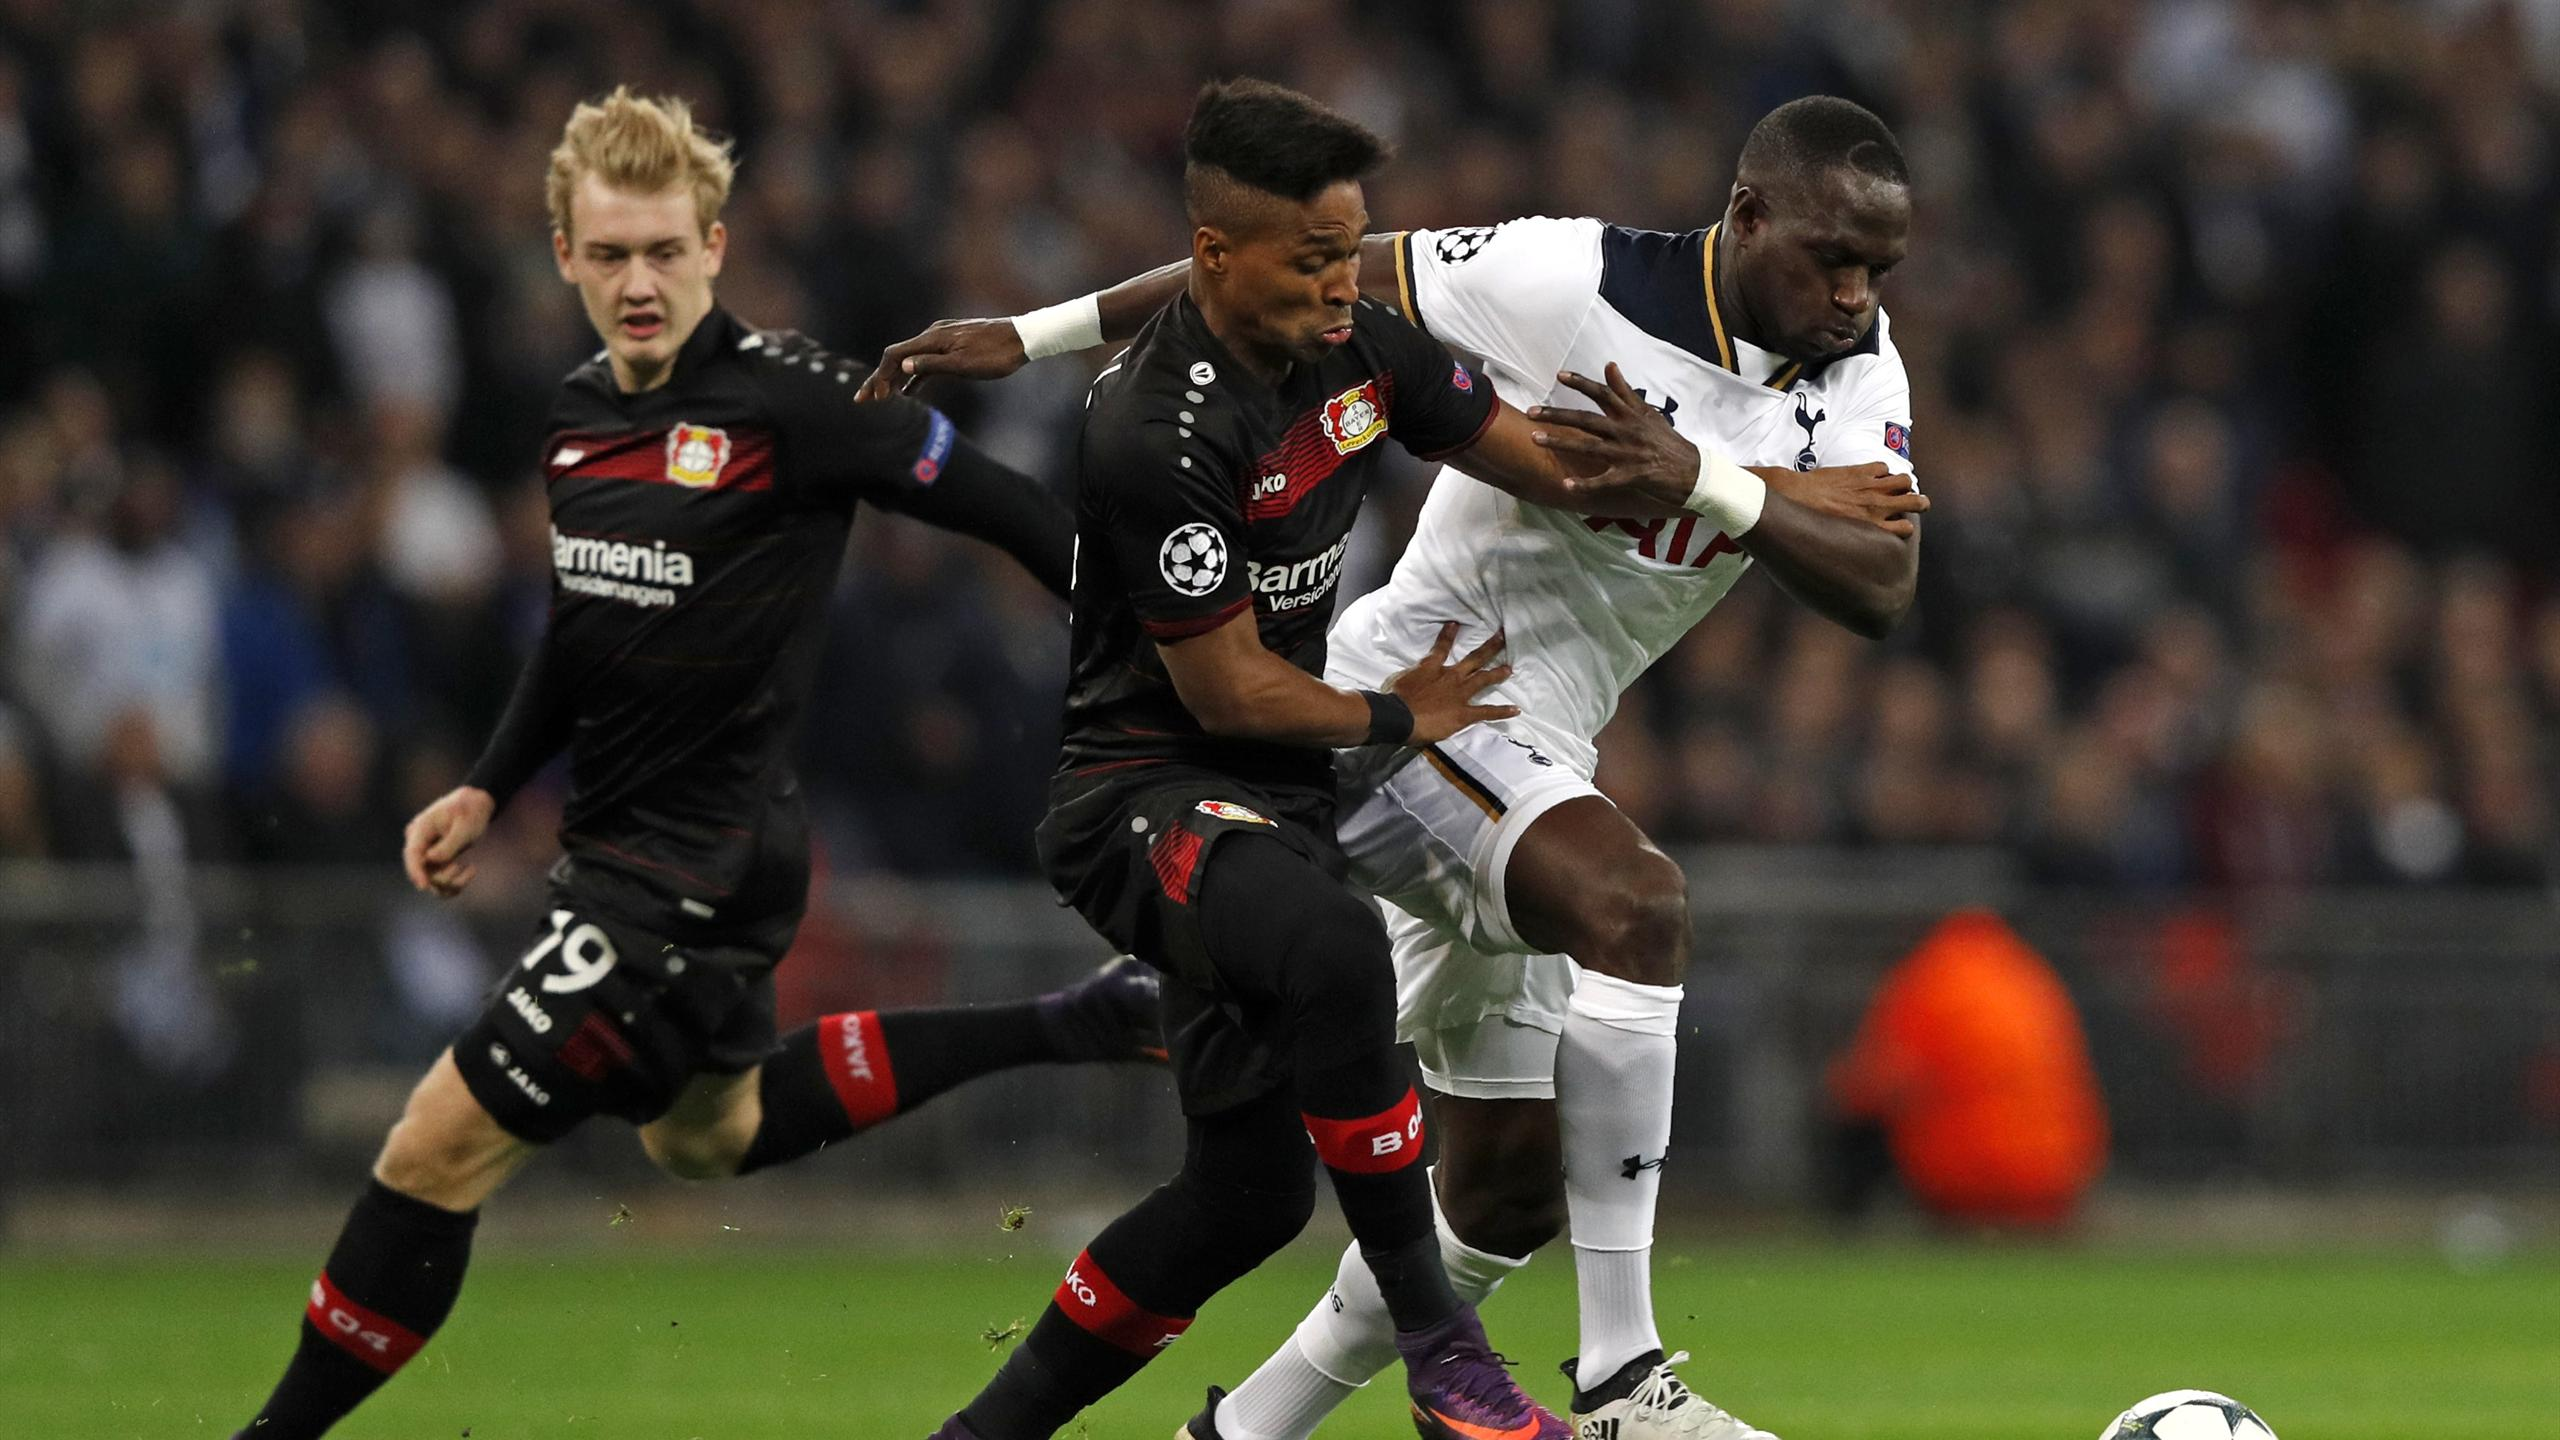 Tottenham Hotspur's French midfielder Moussa Sissoko (2nd R) vies with Leverkusen's Brazilian defender Wendell and Leverkusen's German midfielder Julian Brandt (R) during the UEFA Champions League group E football match between Tottenham and Bayer